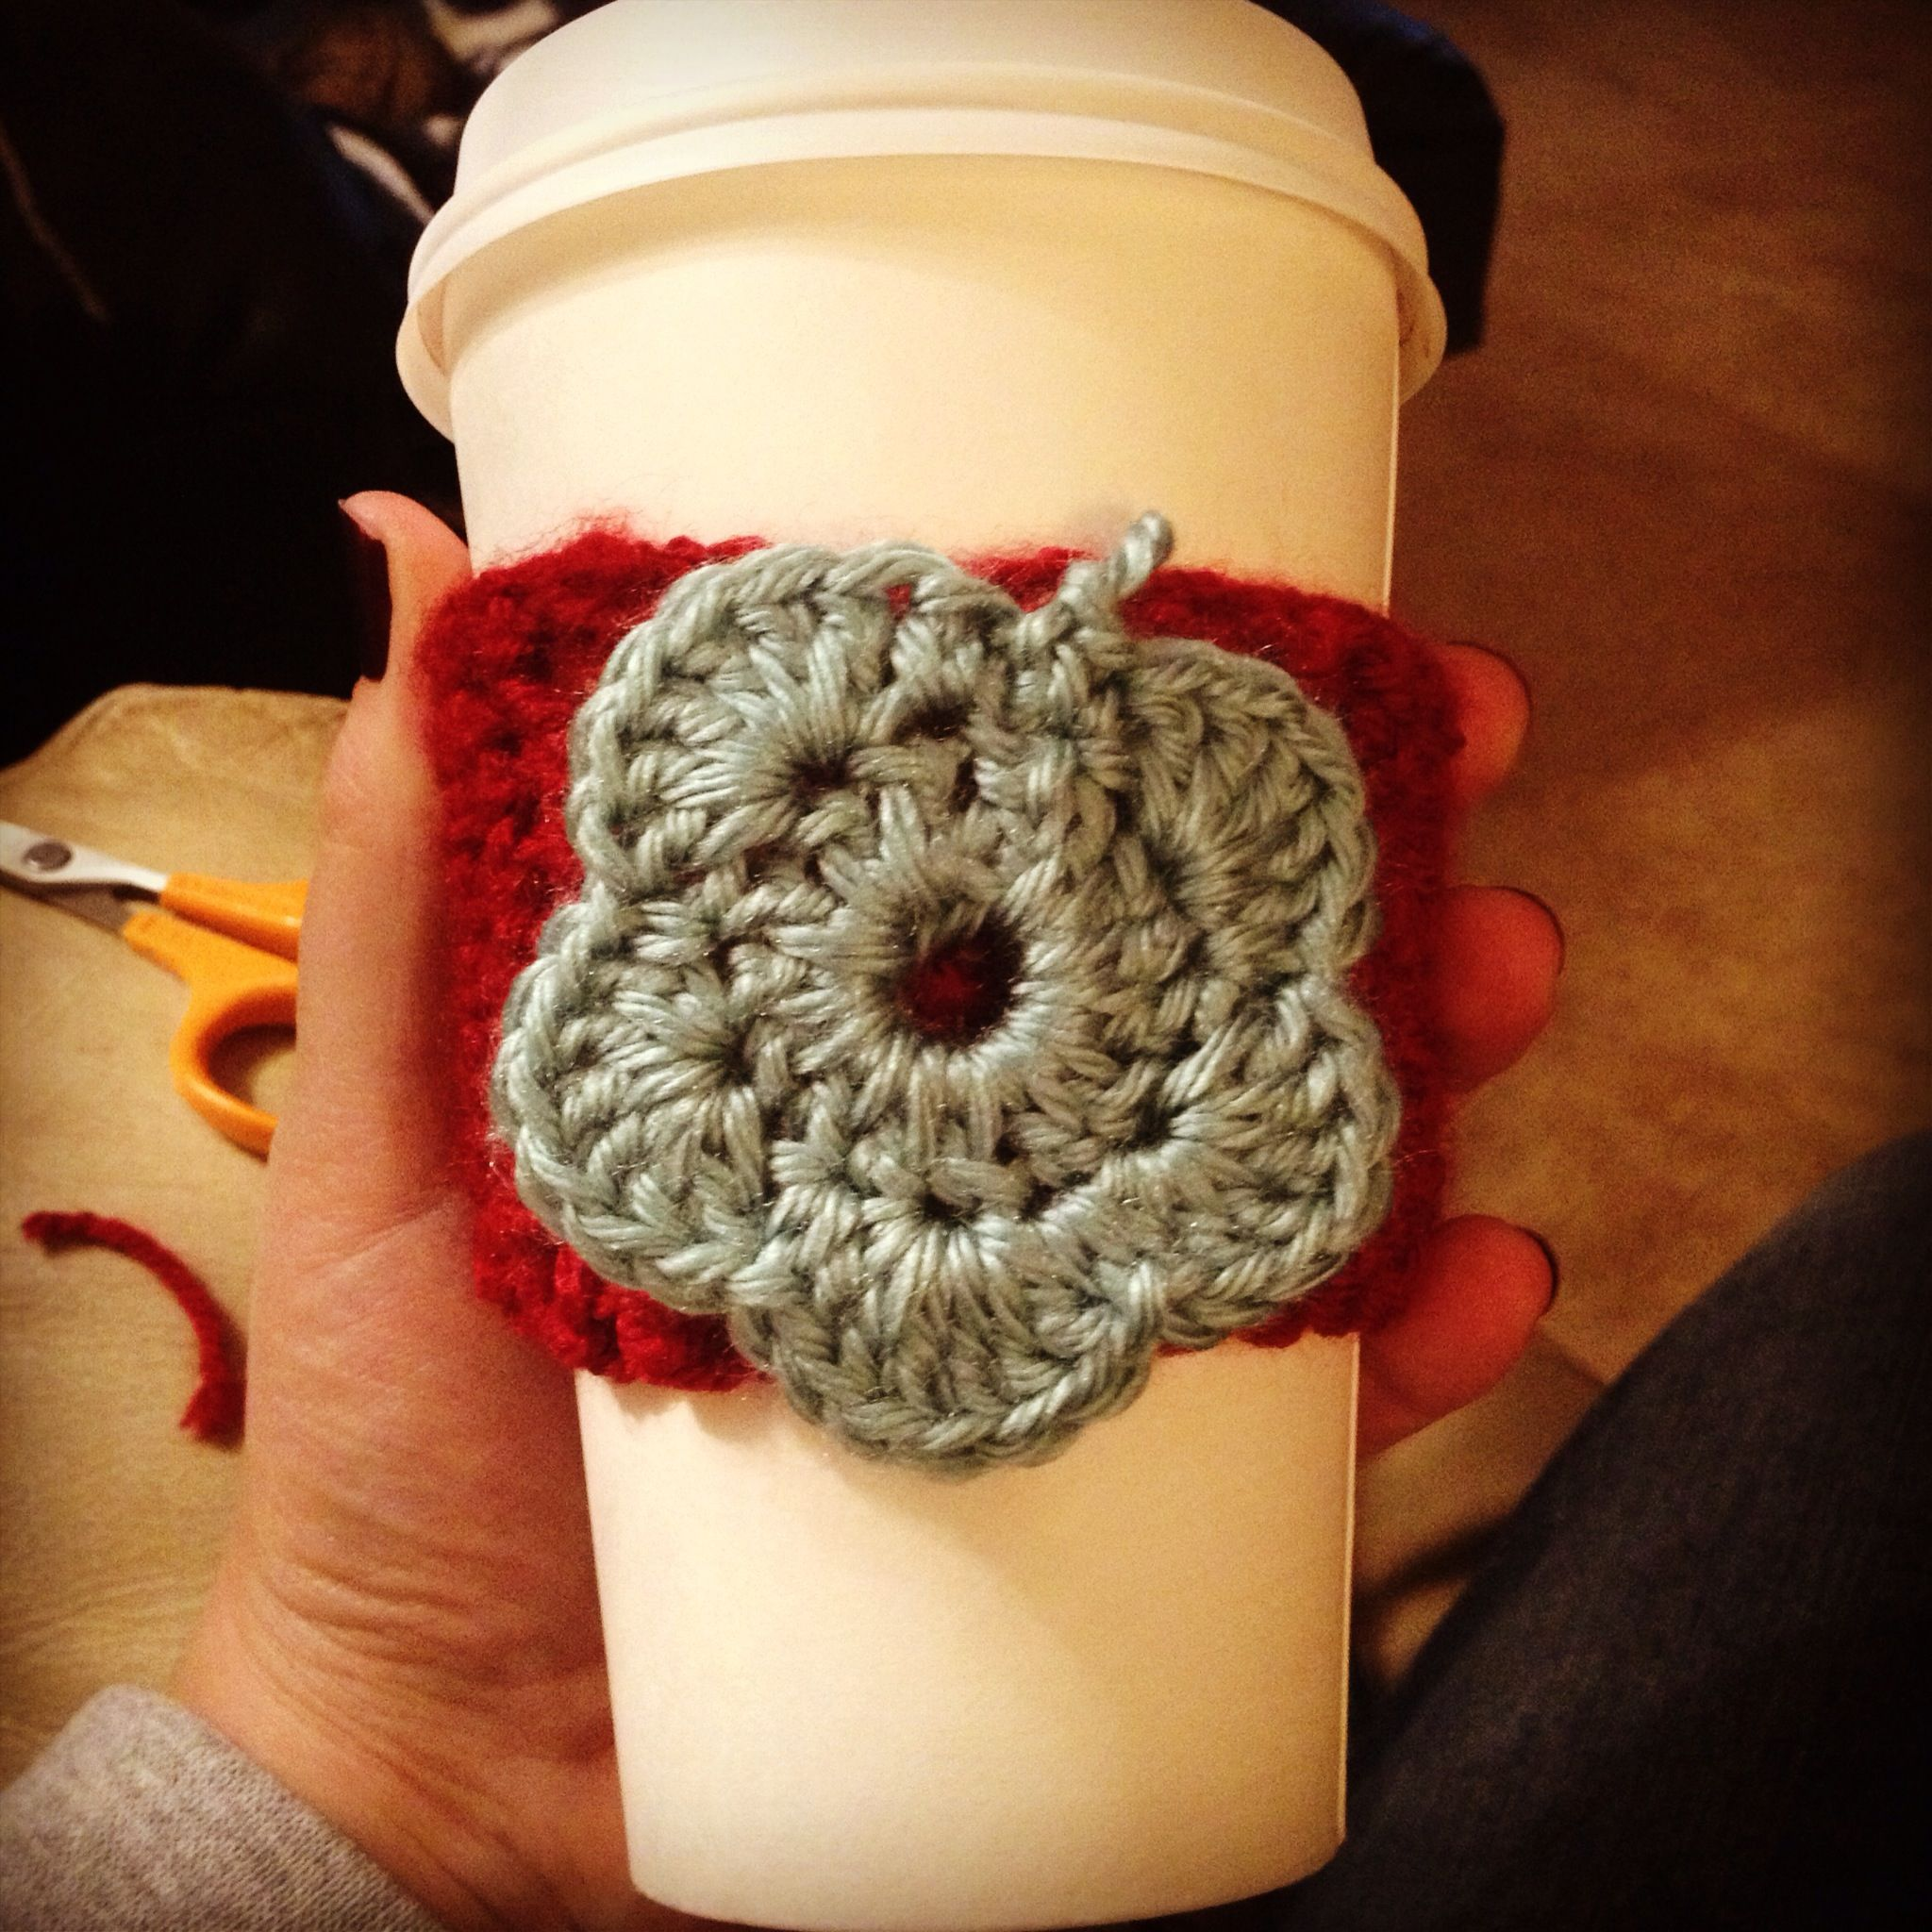 Crocheting Gifts Ideas : Crochet cozies Christmas Gift Ideas :) Crochet/knit Pinterest